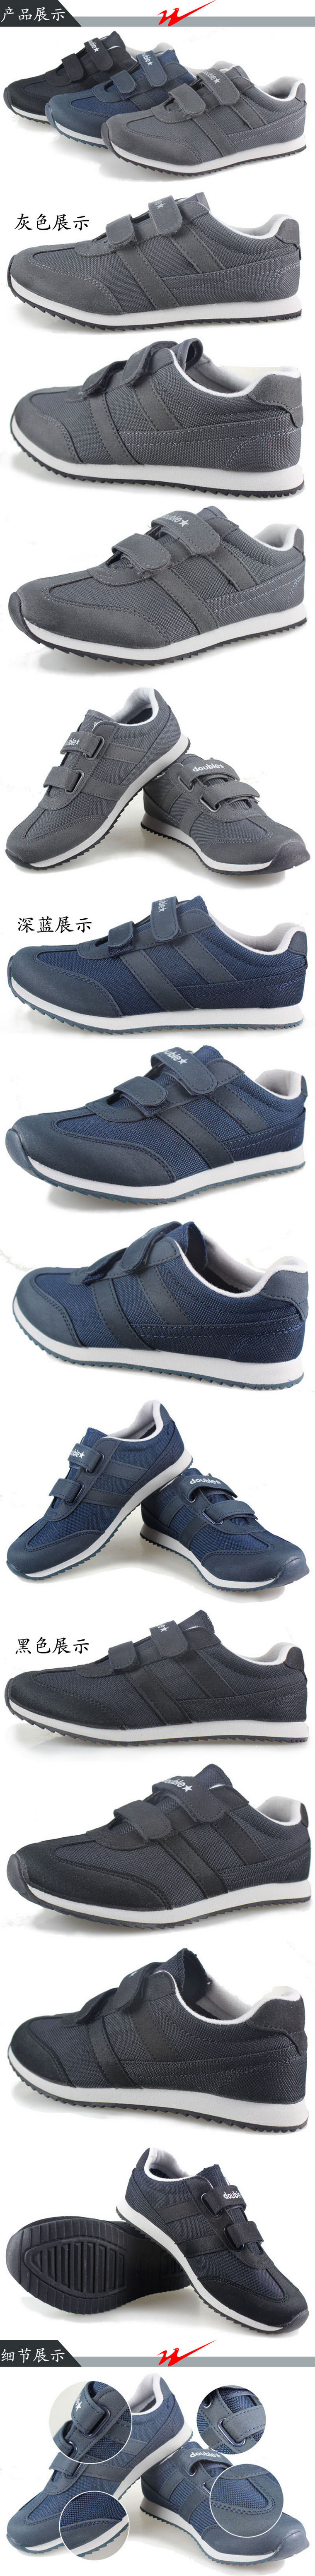 Double Star Binary counters authentic 818-E-323 Mens canvas, Velcro fastener lightweight casual shoes to help low